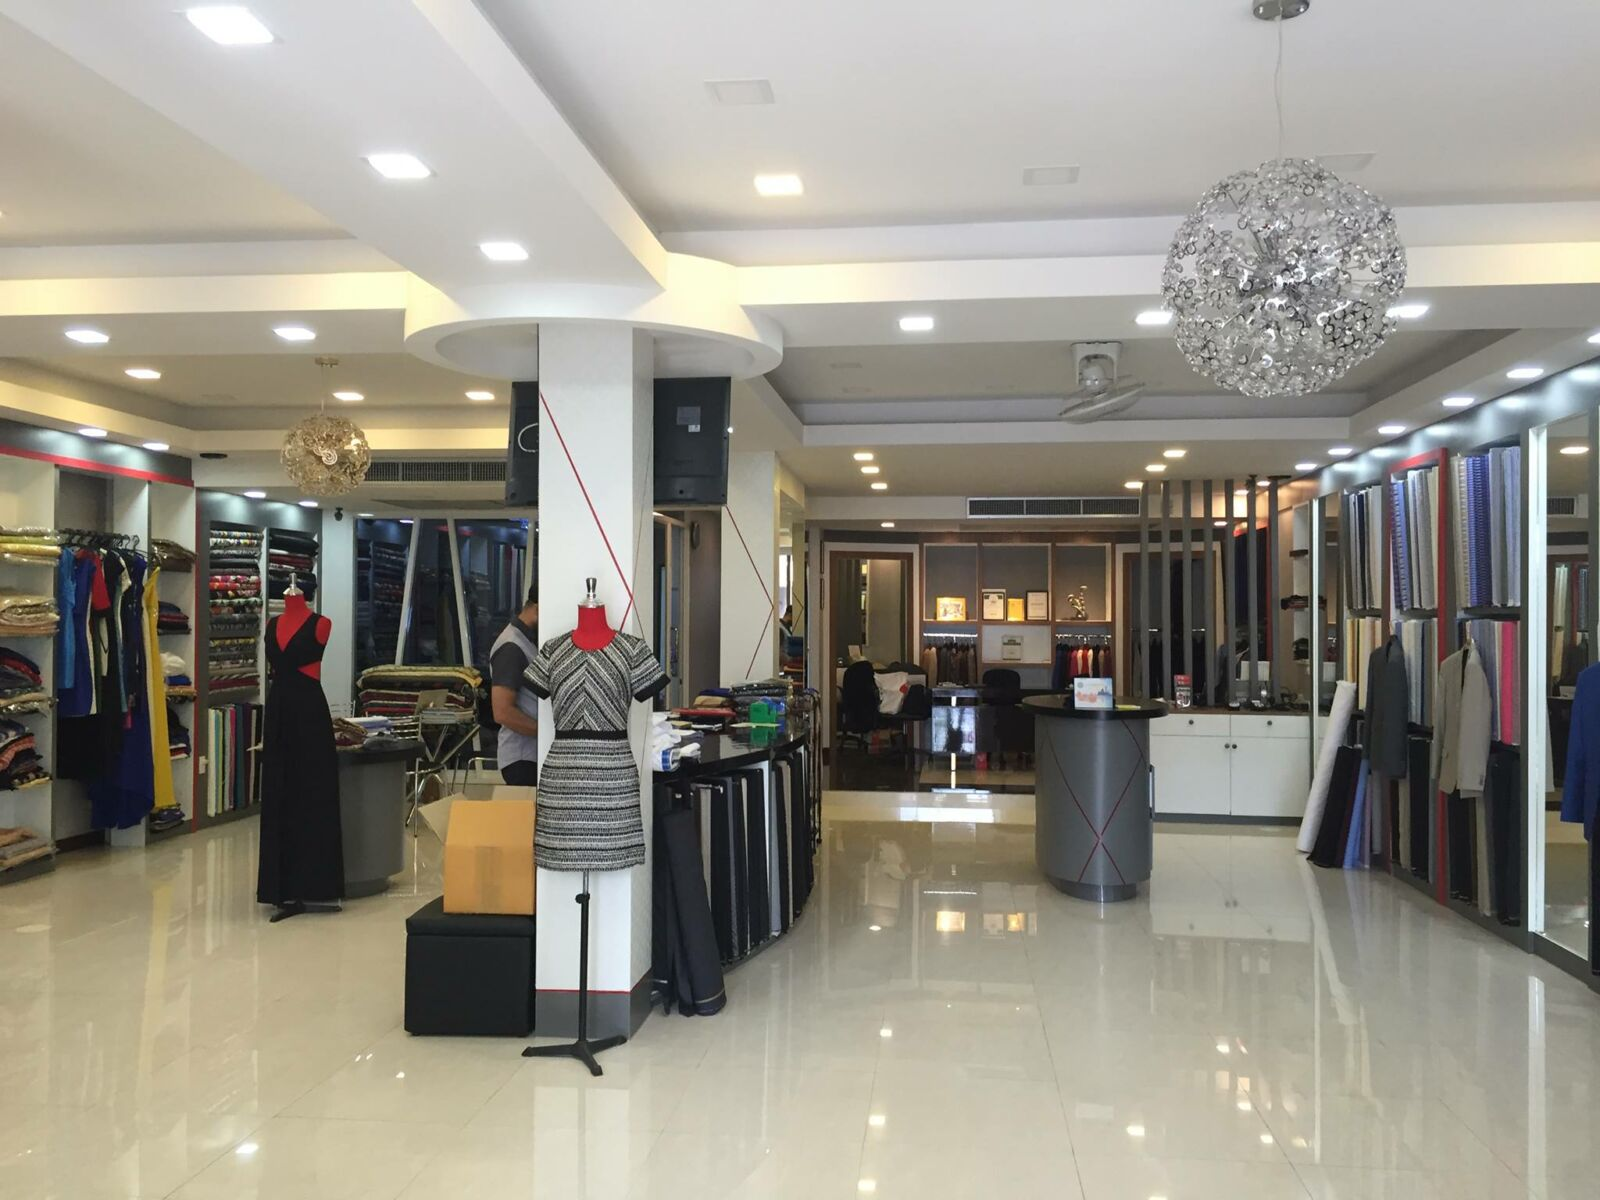 RK Tailor and Fashions